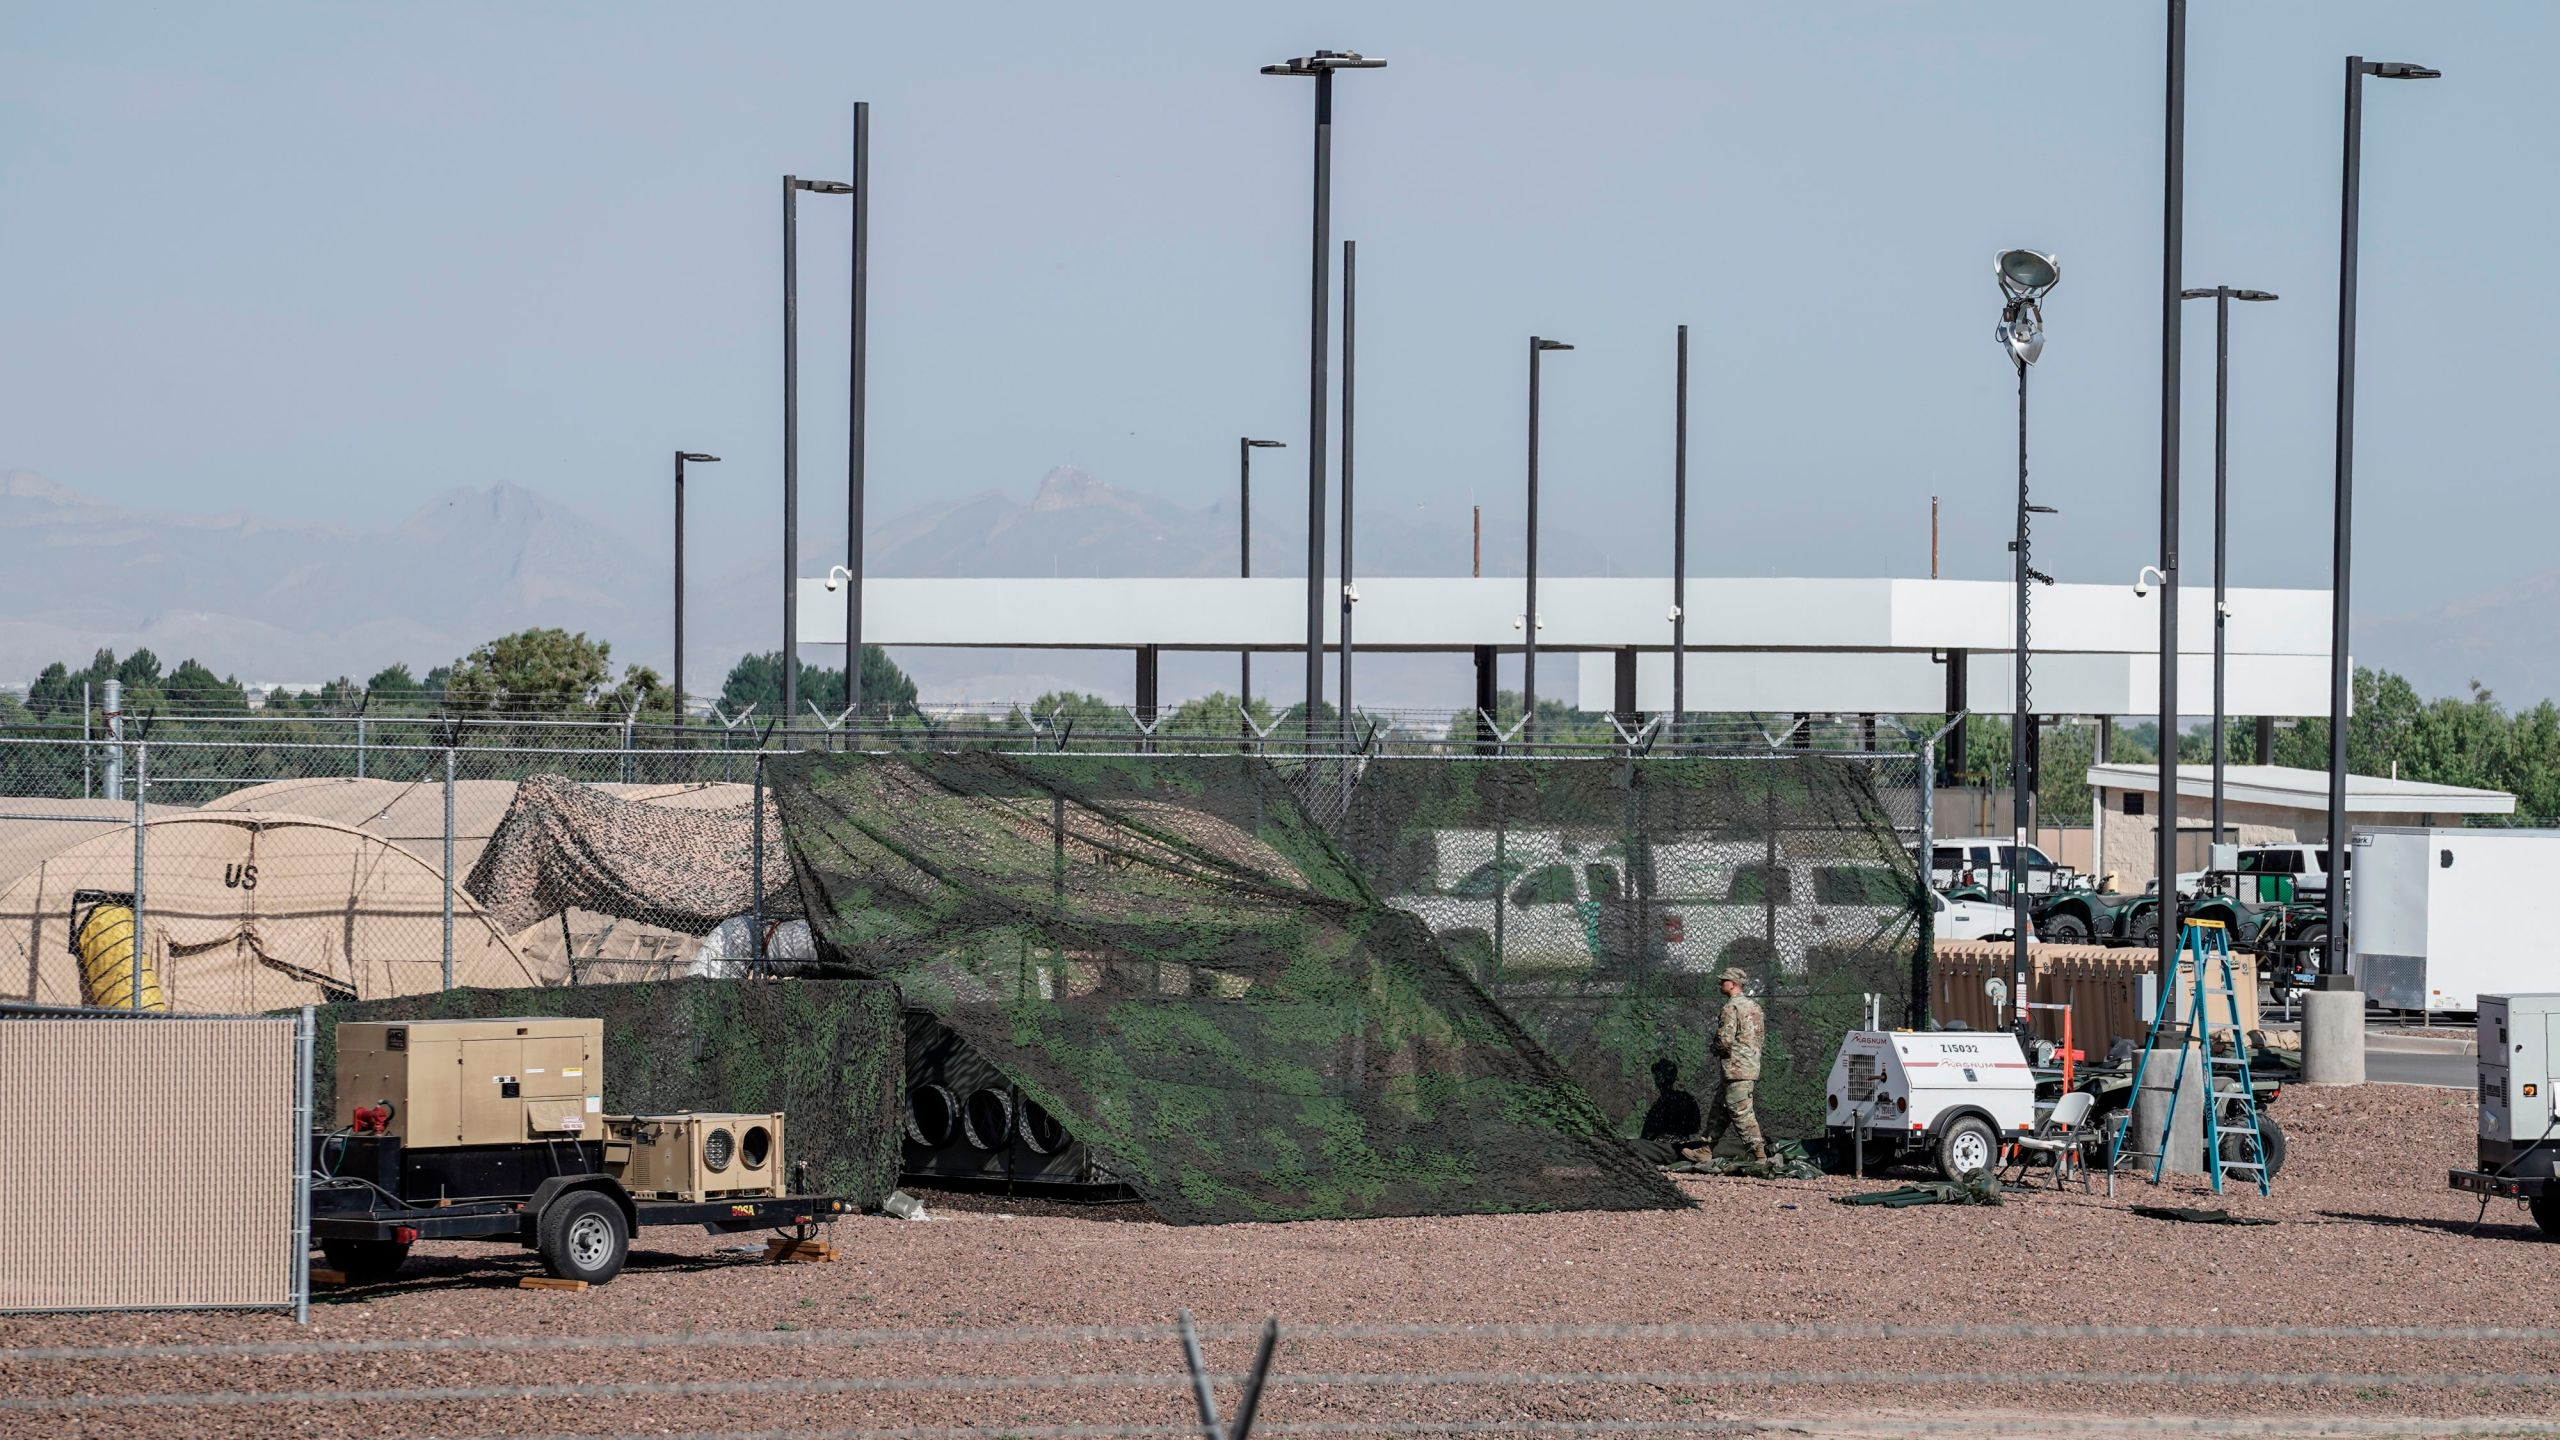 Military tents used to house migrants are pictured at the U.S.Customs and Border Protection facility is seen in Clint, Texas, on June 26, 2019. -The site held about 250 children in crowded cells, with limited sanitation and medical attention, as reported by a group of lawyers able to tour the facility under the Flores Settlement. (Credit: PAUL RATJE/AFP/Getty Images)